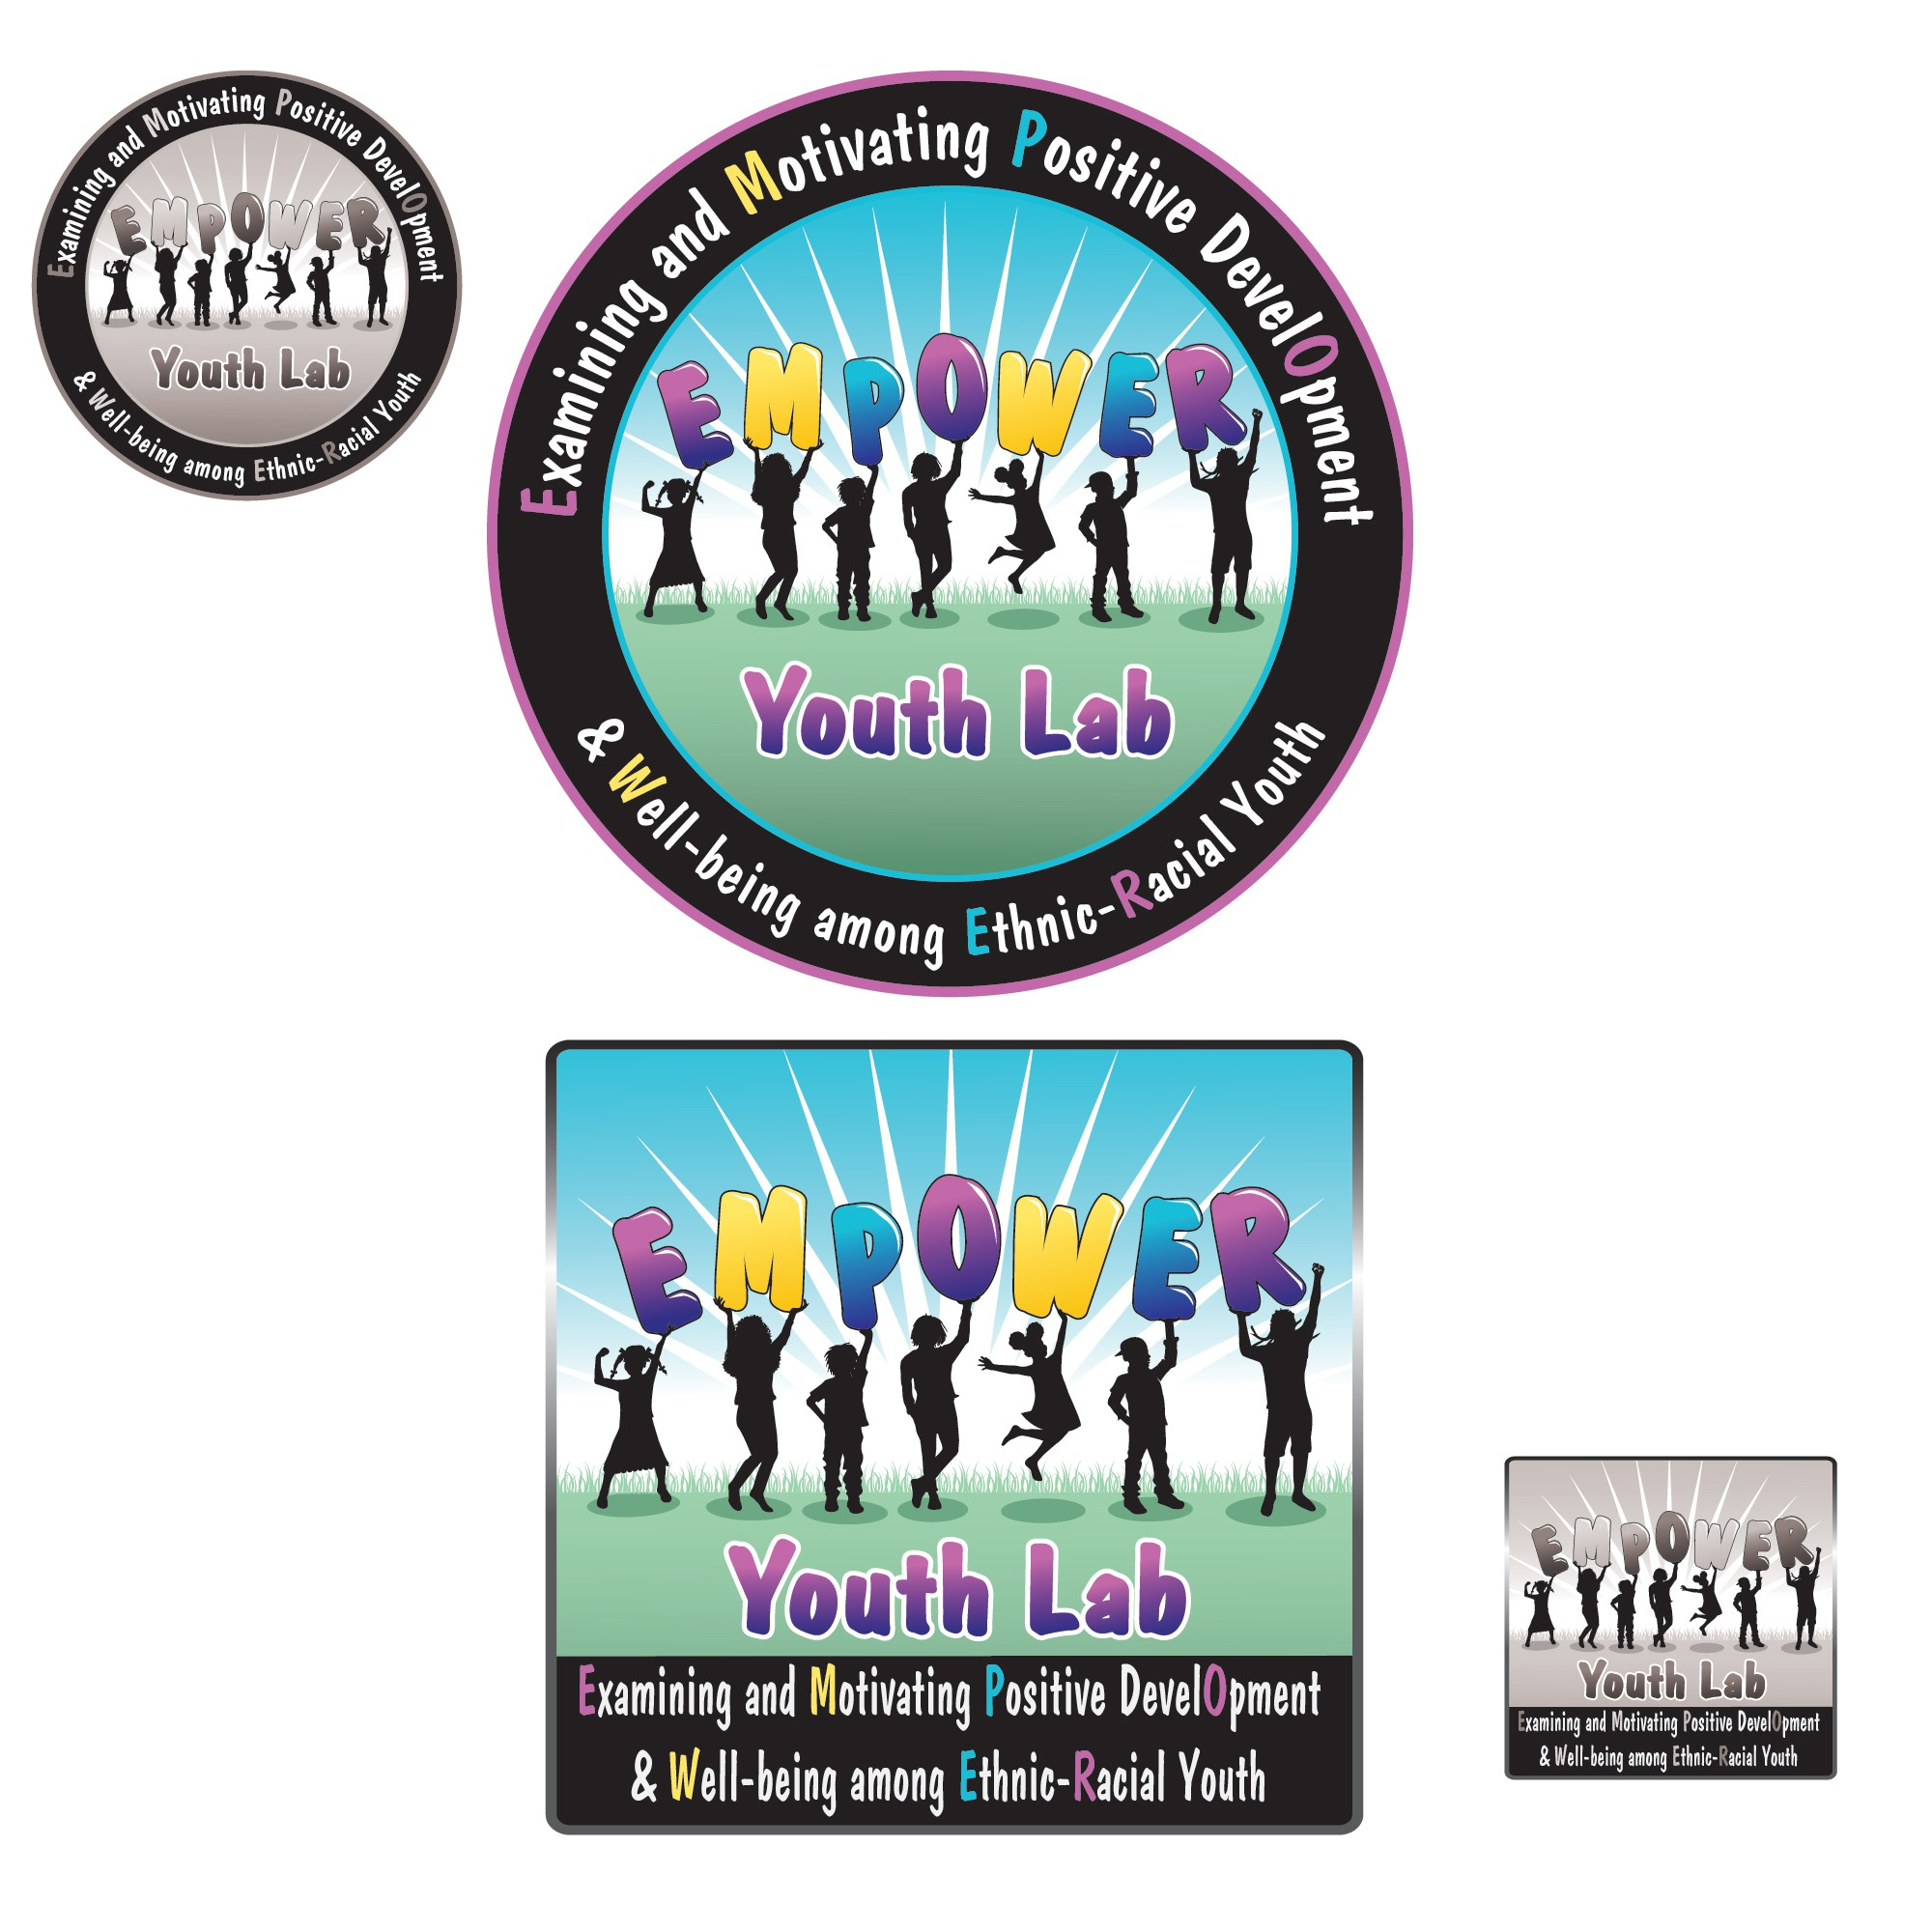 EMPOWER Youth lab - have ideas but need a creative and talented designer!